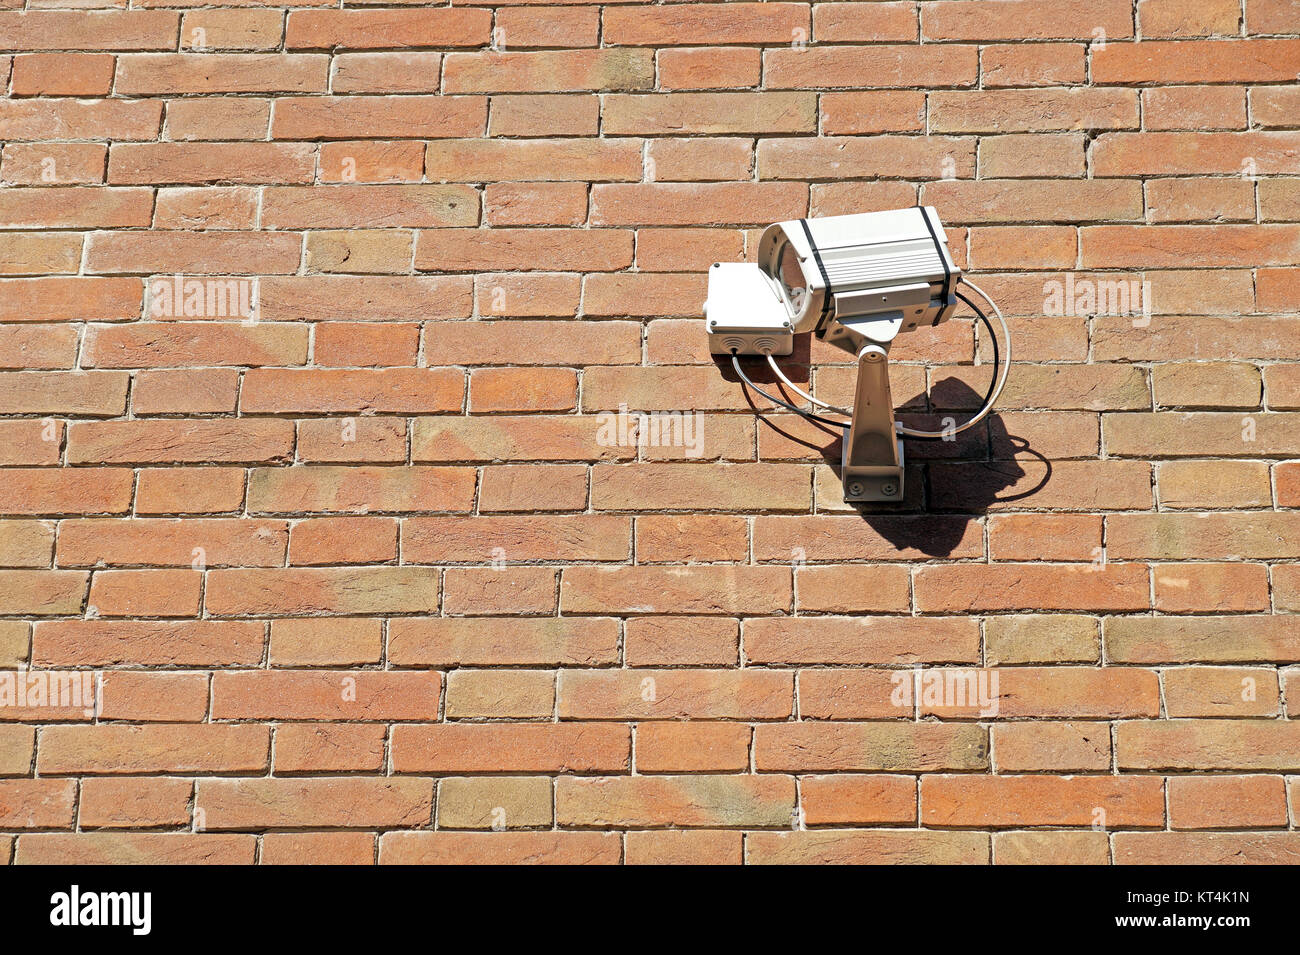 cctv security camera. mounted on the brick wall outdoors. - Stock Image